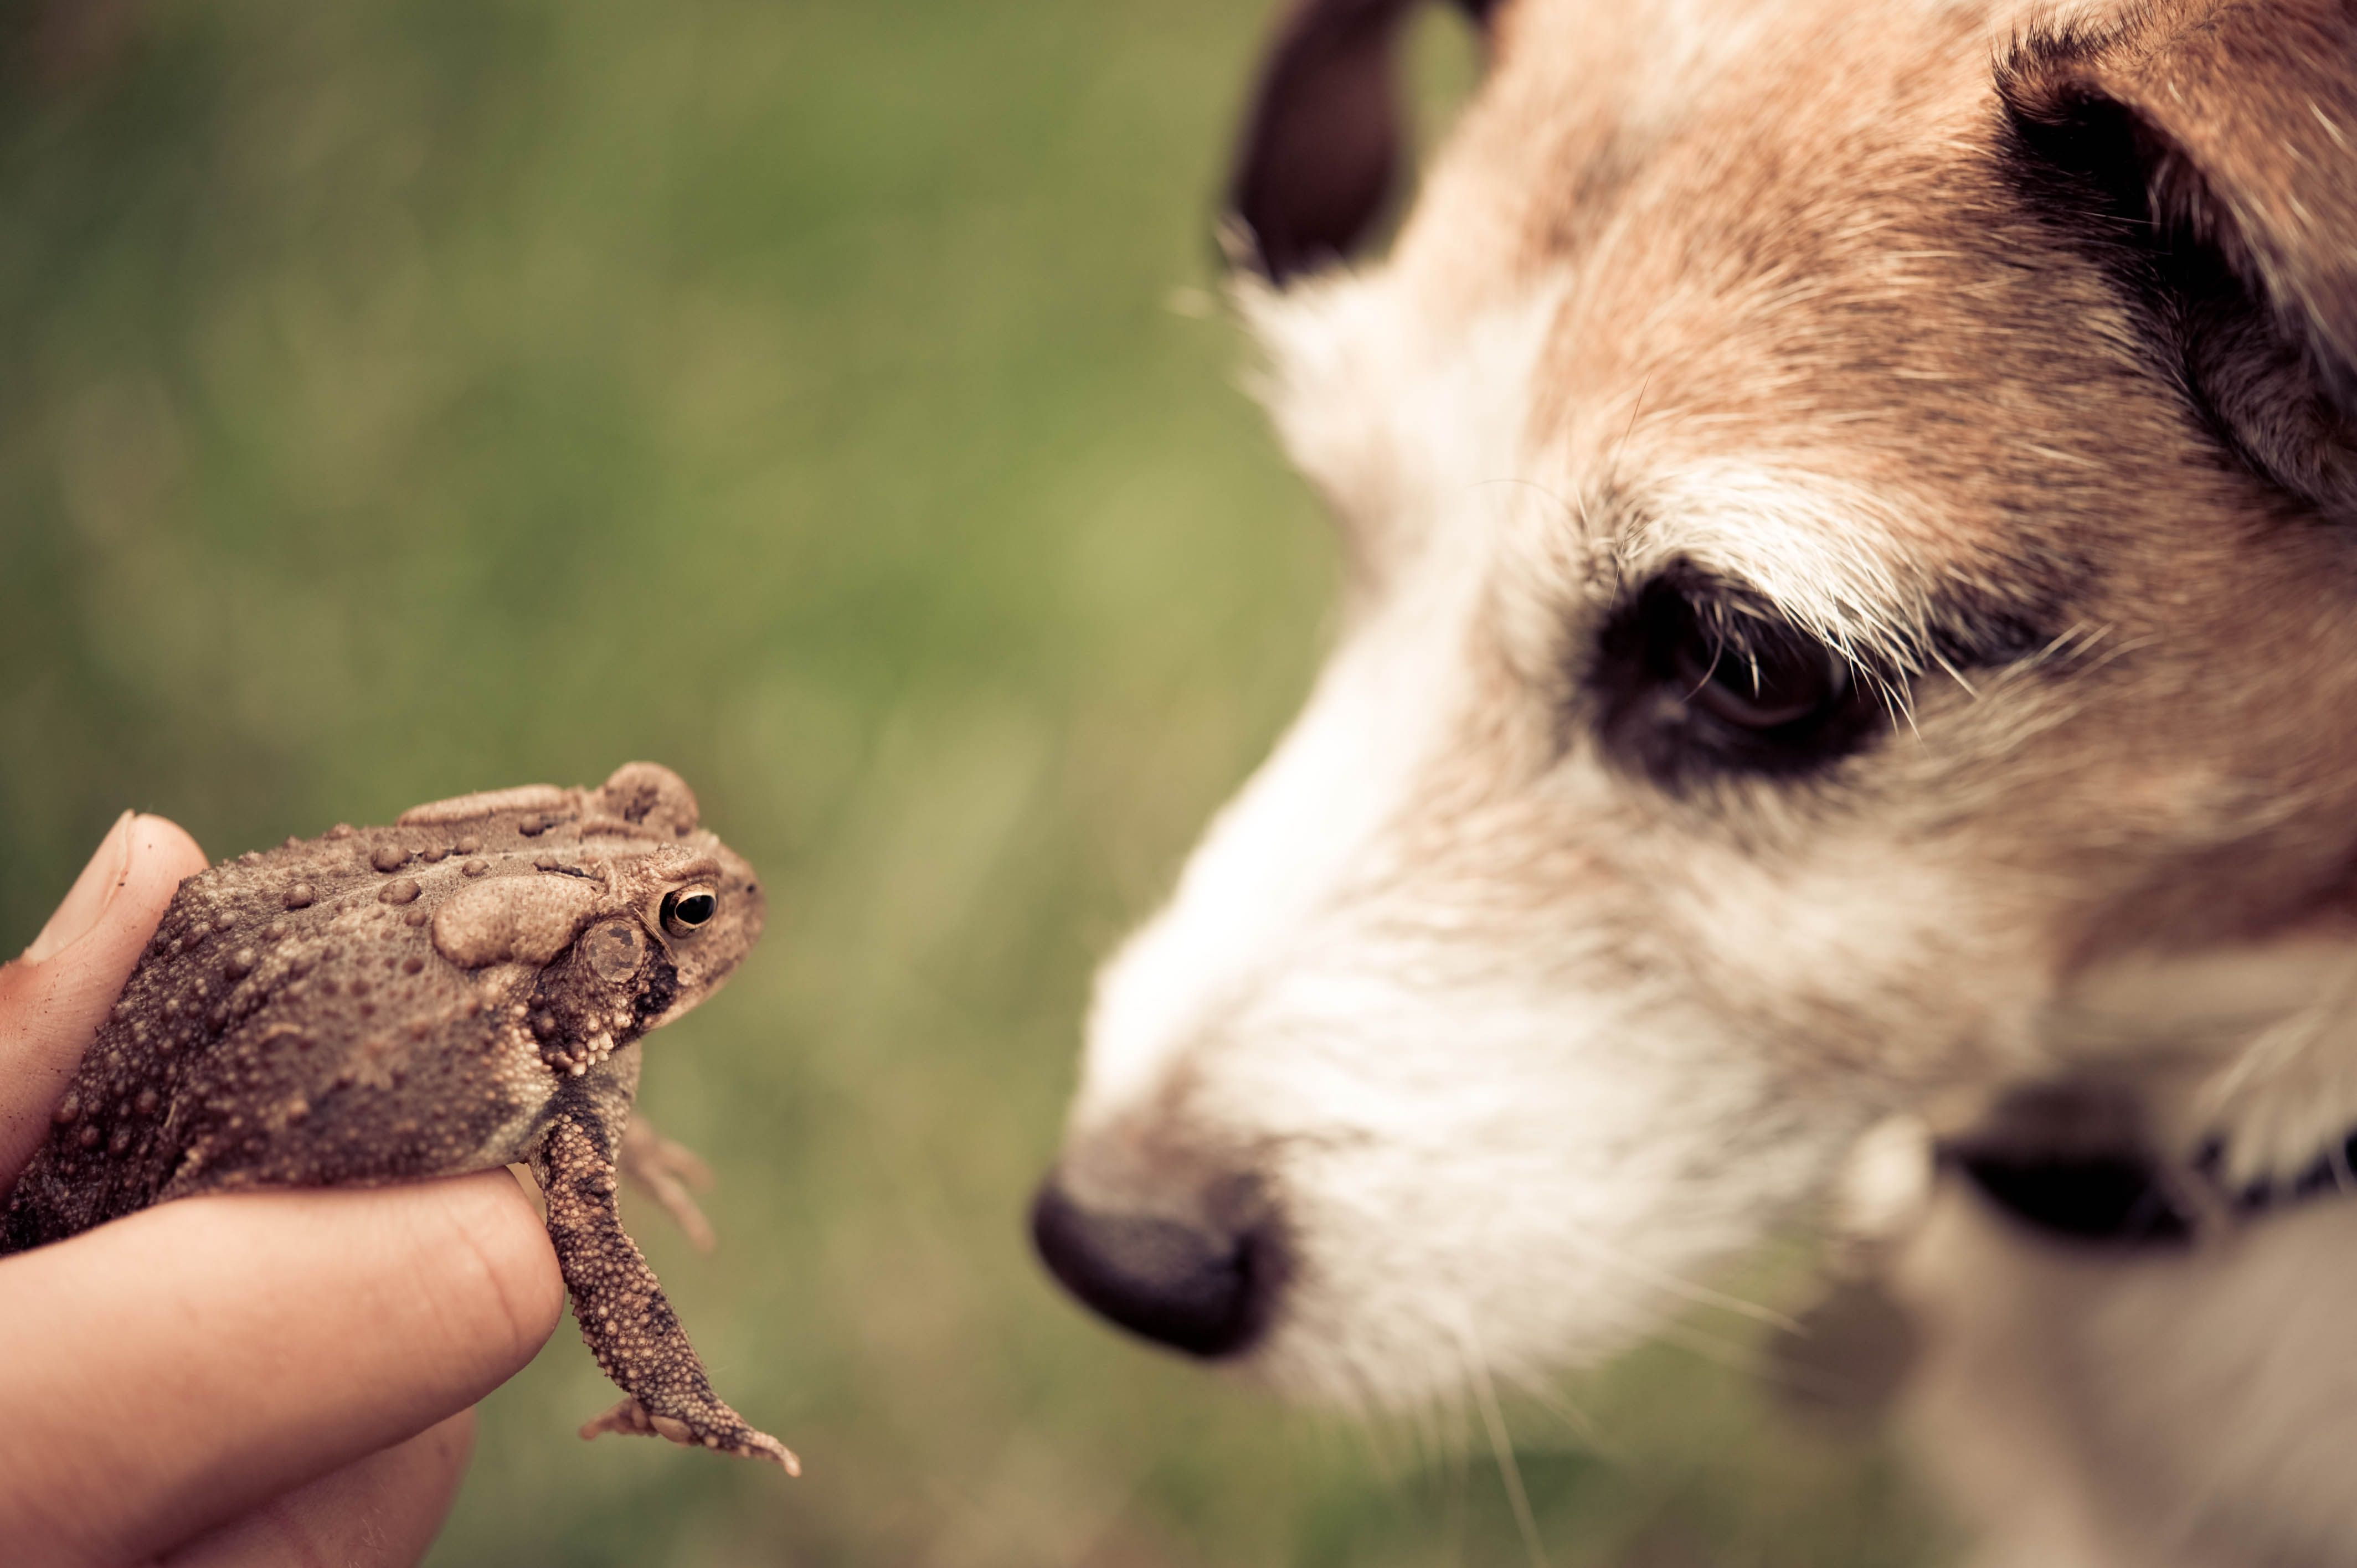 How To Treat Toad Poisoning In Dogs